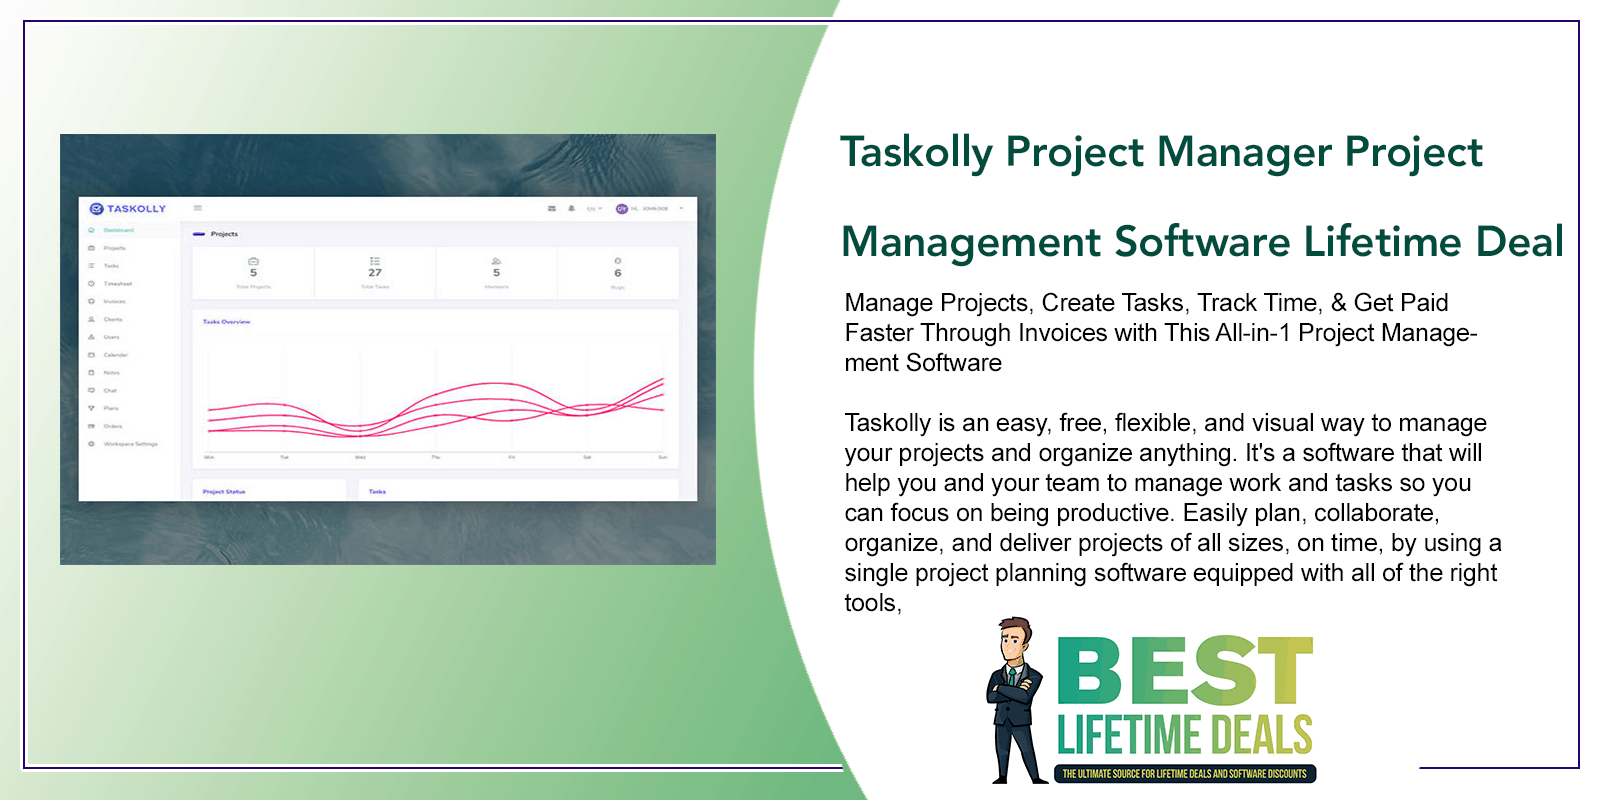 Taskolly Project Manager Project Management Software Lifetime Deal